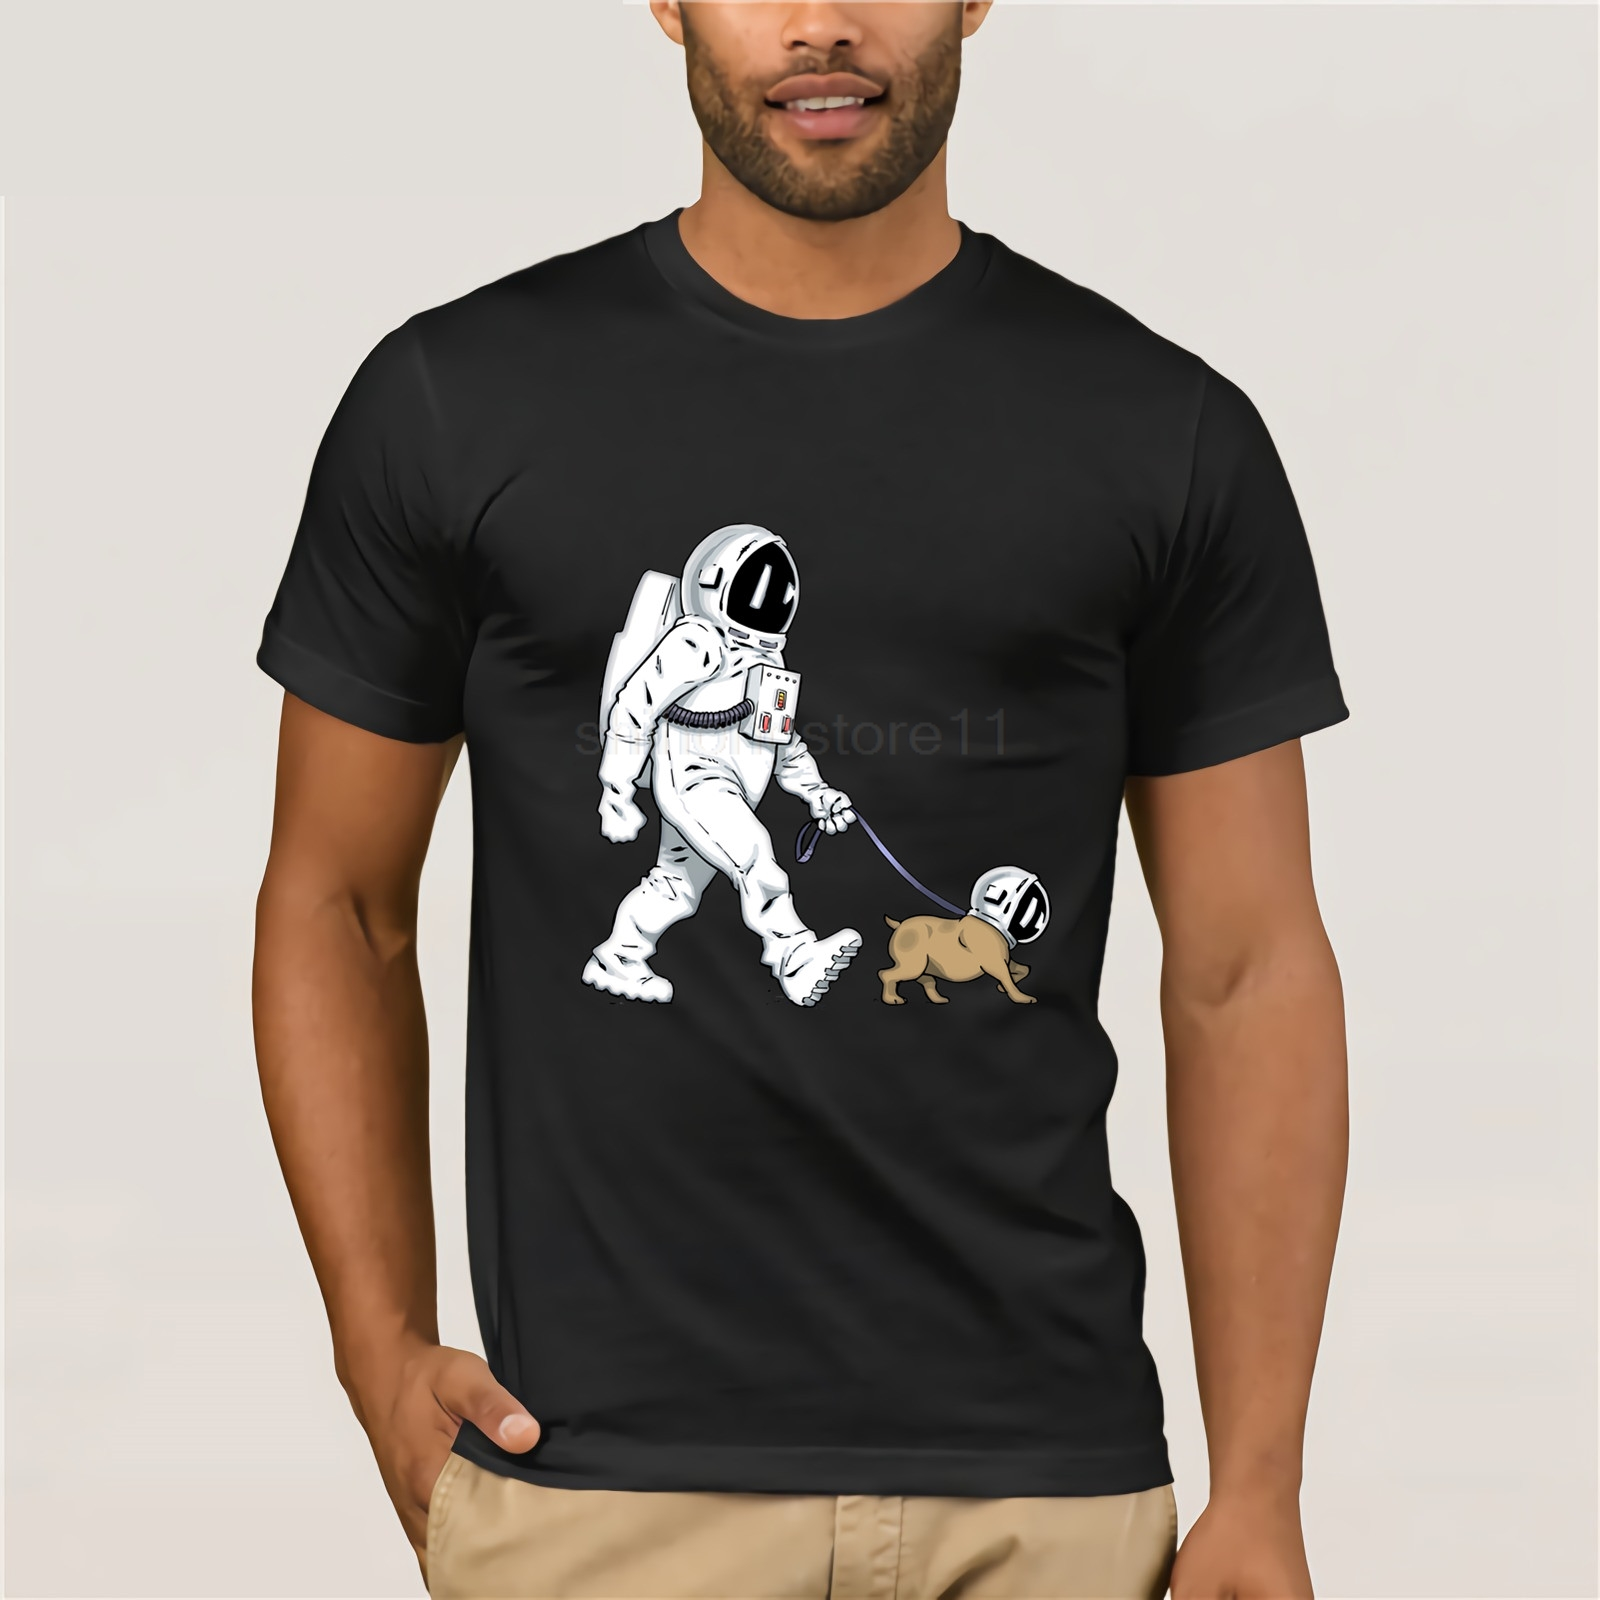 The Walking Dead T shirt men SpaceX Spaceship tshirt Astronaut Dog Cool T-shirt Rocket tshirt homme Starman Space dog Tees Tops image